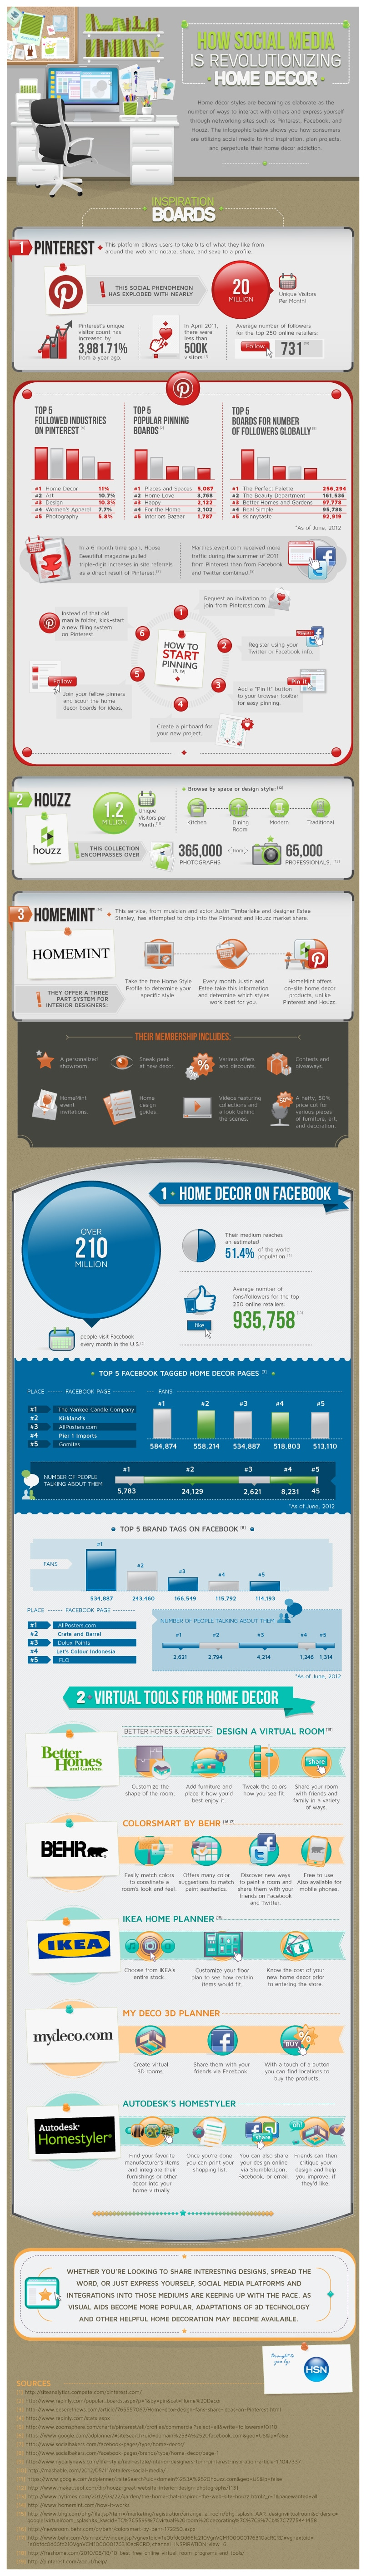 Social Media Is Transforming Home Design Space [Infographic]